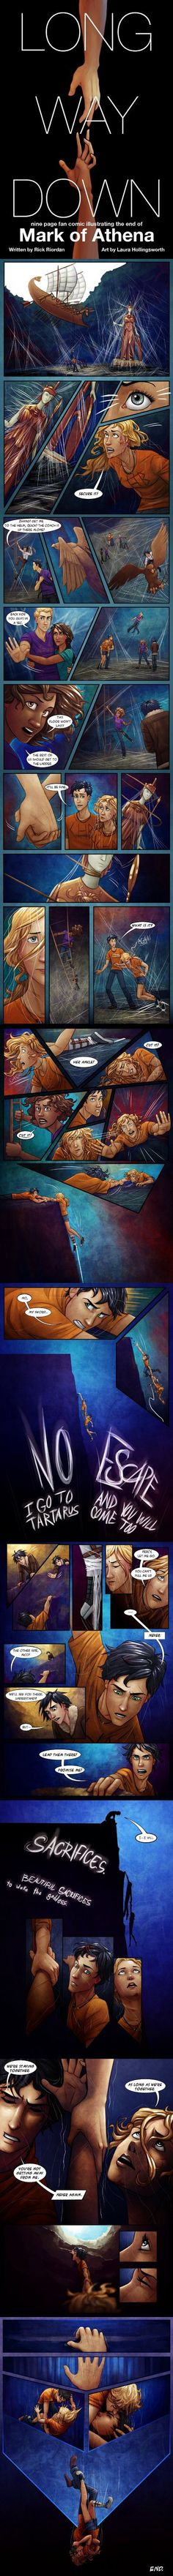 Long Way Down, comic of The Mark of Athena by Rick Riordan